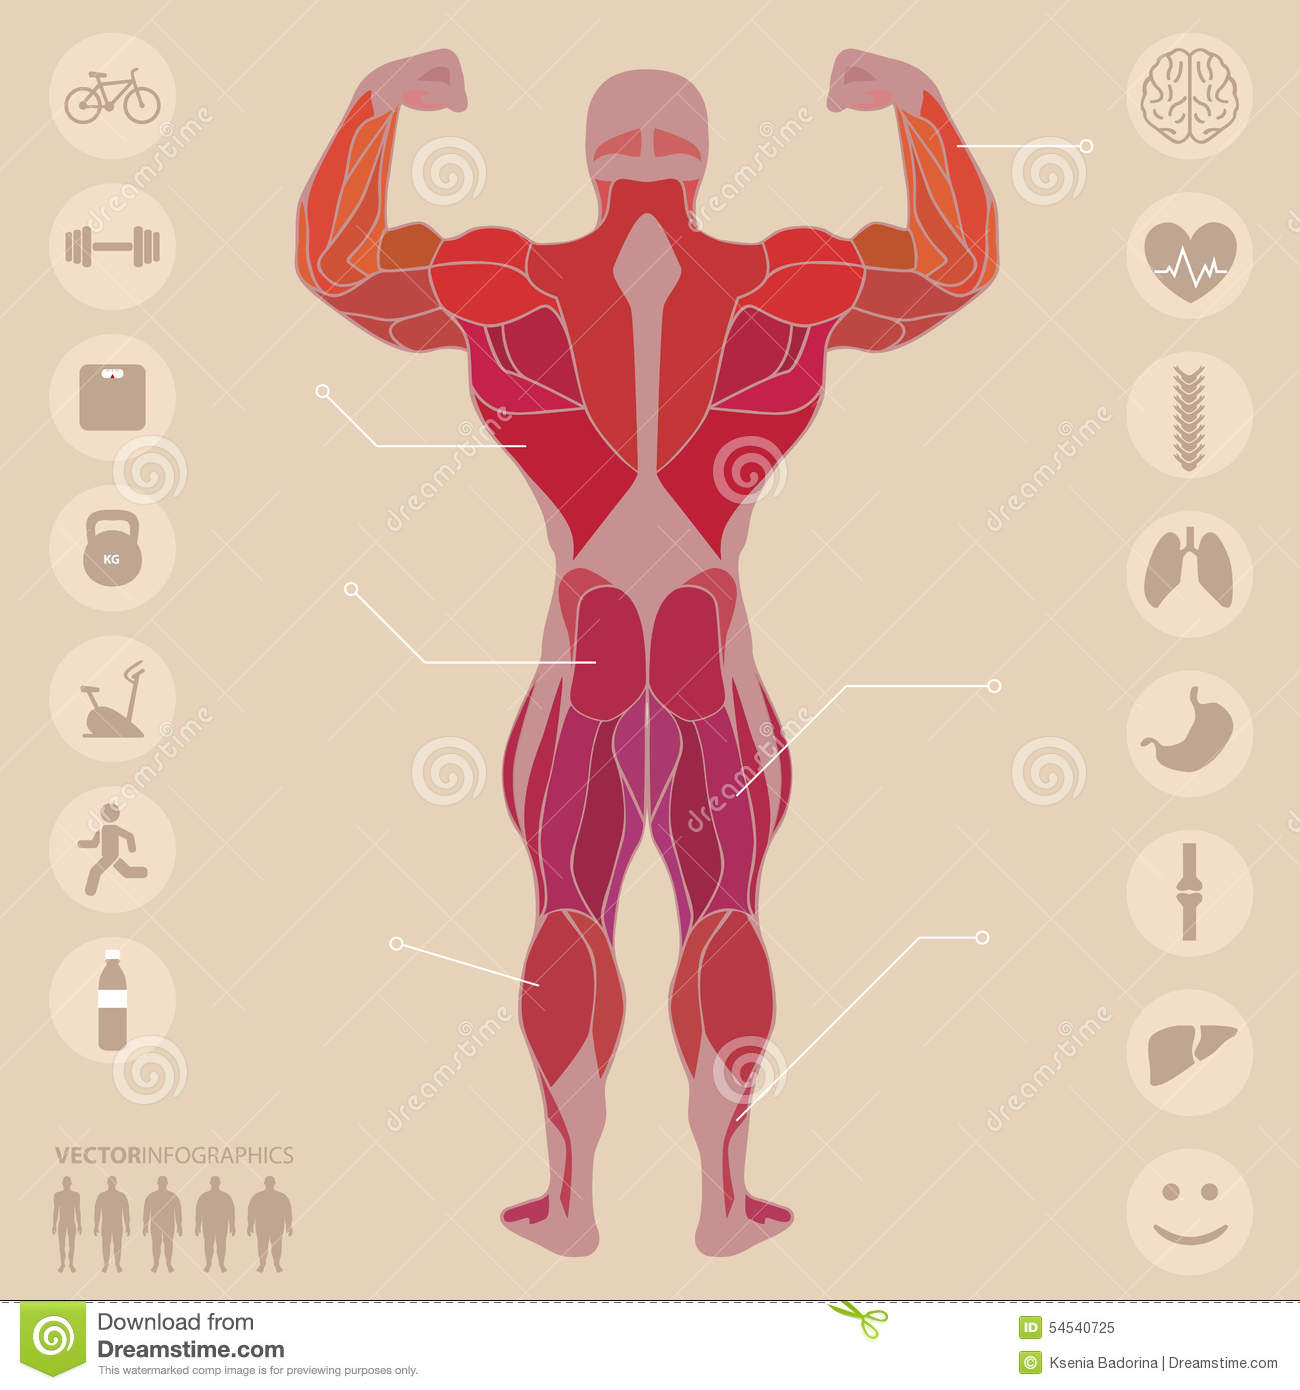 Human, Anatomy, Muscles, Back, Sports, Fitness, Medical, Stock ...